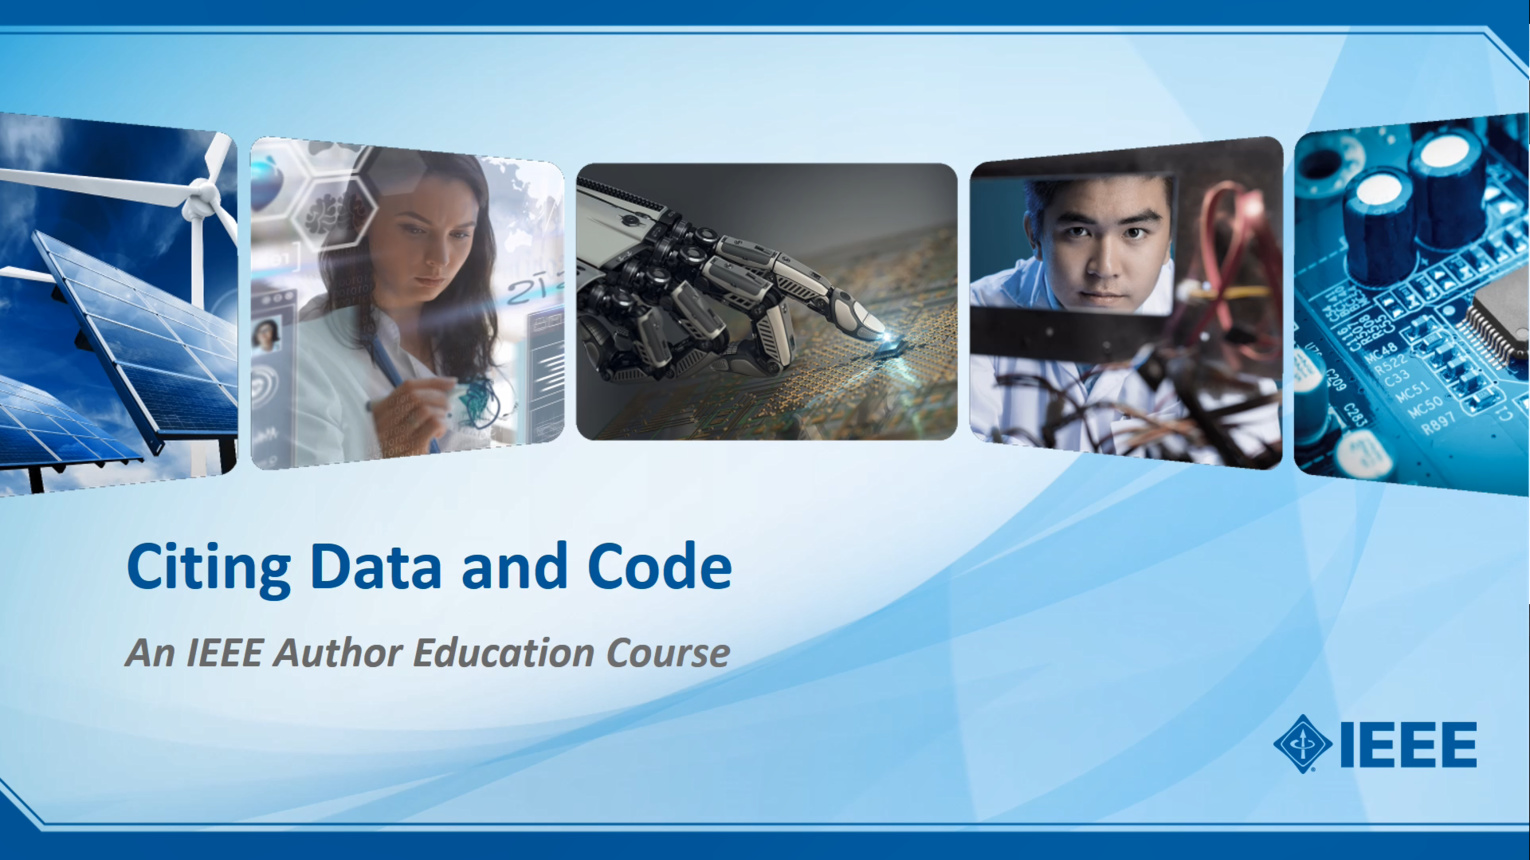 Citing Data and Code - an IEEE Author Education Course